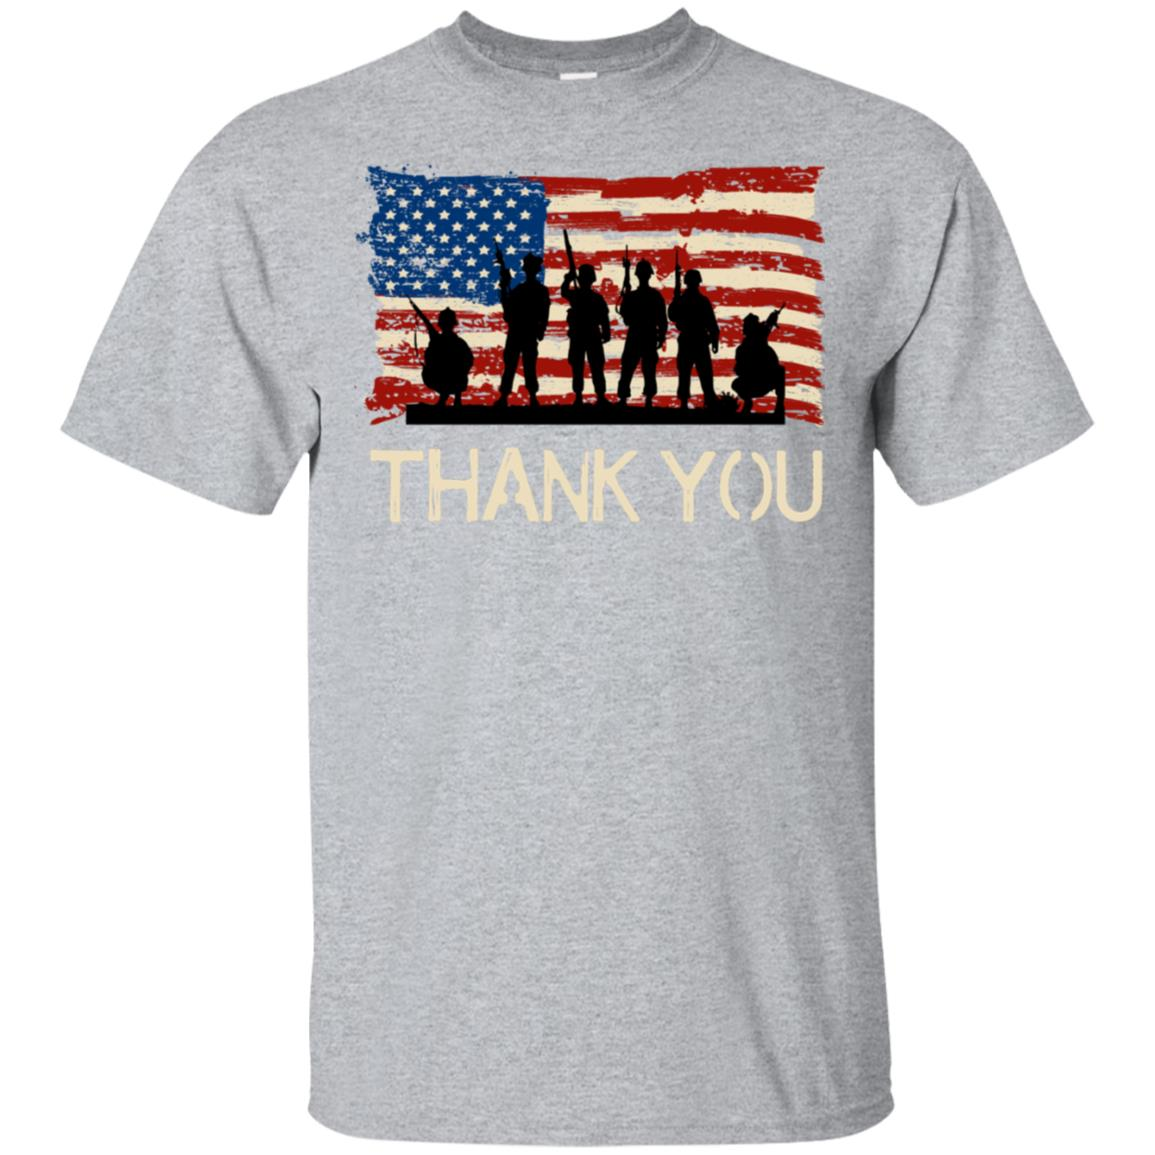 Veterans Day Memorial Day for Army or Navy Vets Unisex Short Sleeve